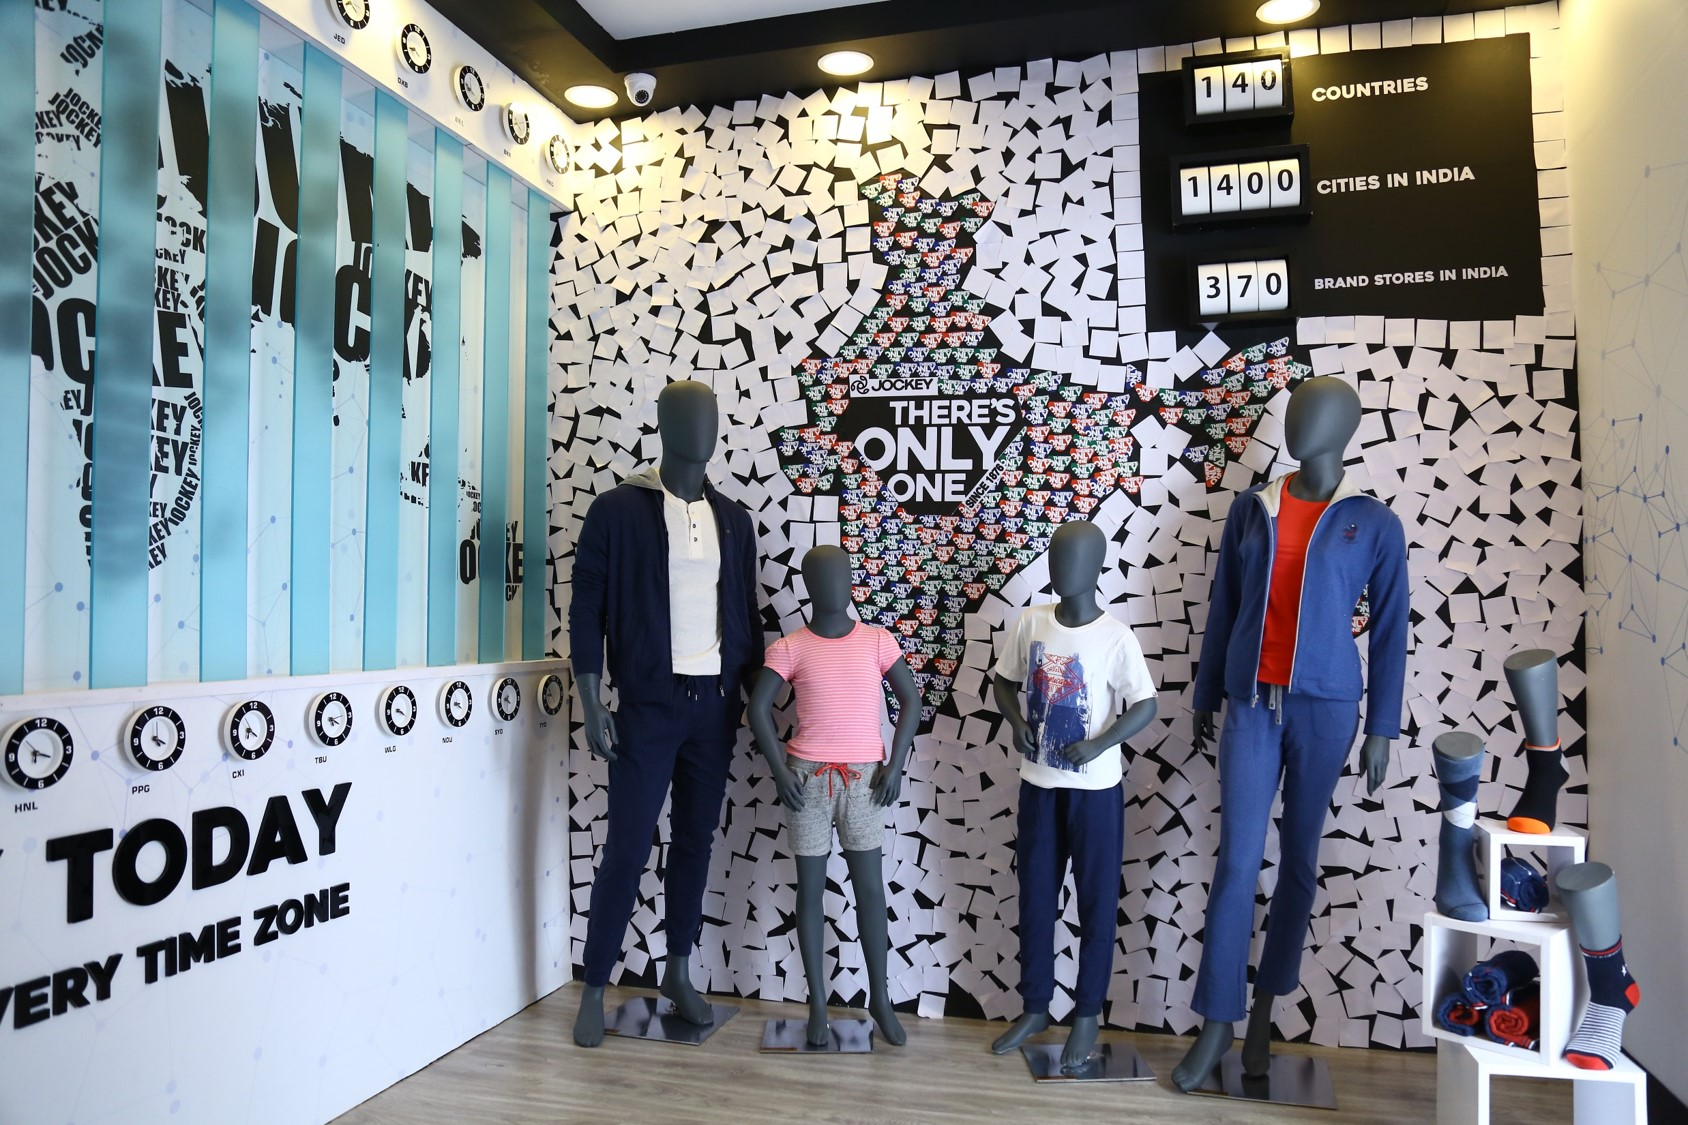 Jockey and Encompass Co-Curate a One-of-its-kind Pop-up Museum